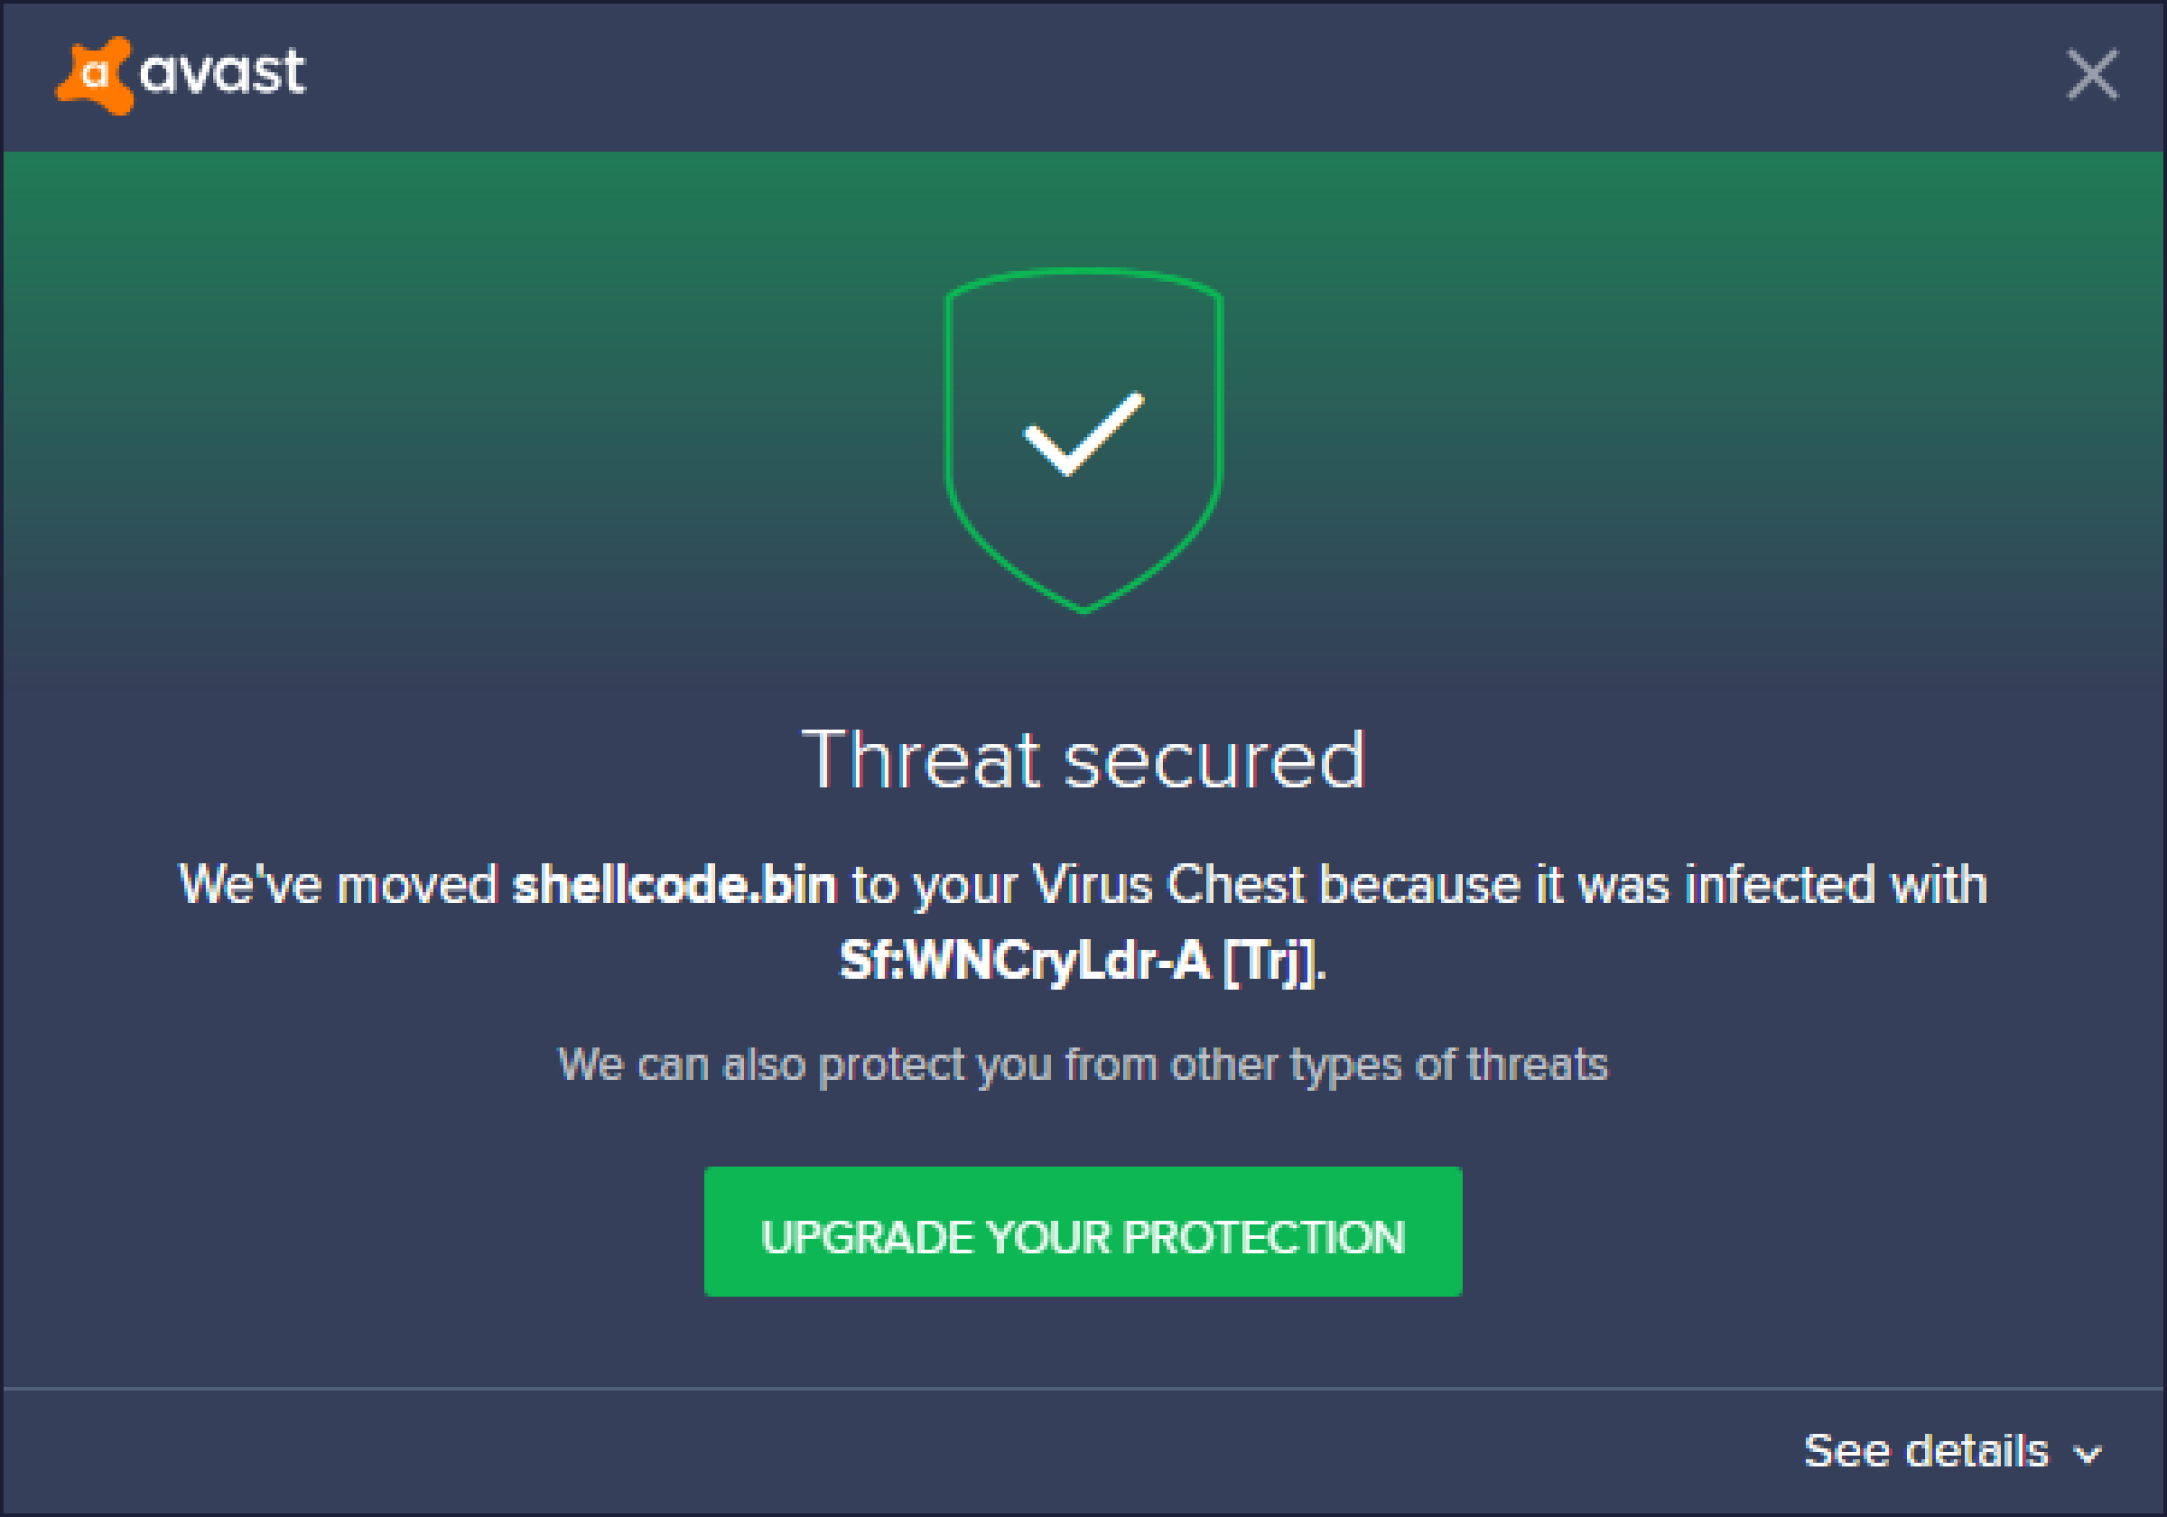 avast detected a virus